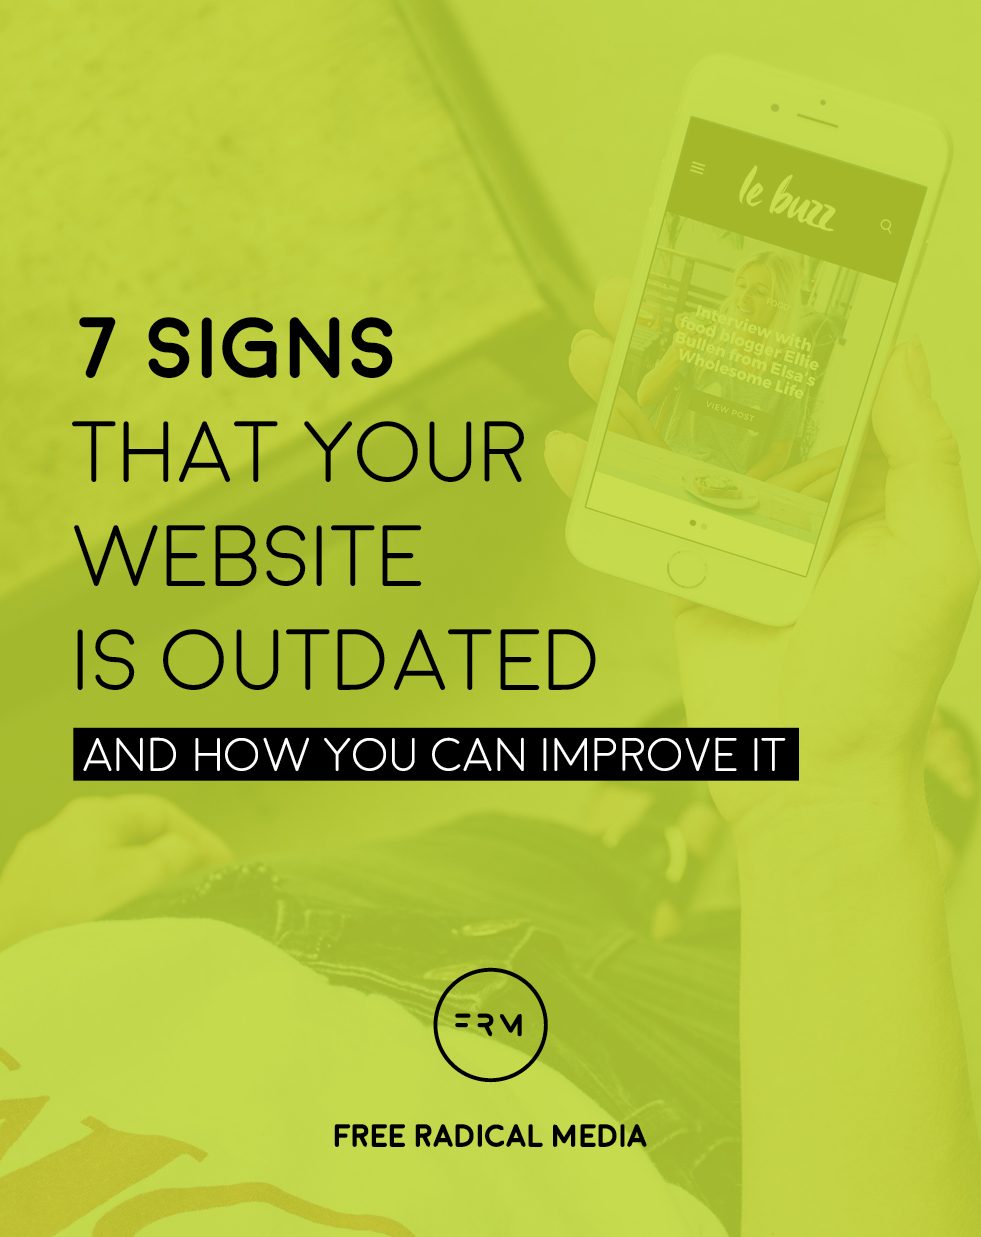 7 signs your website is outdated